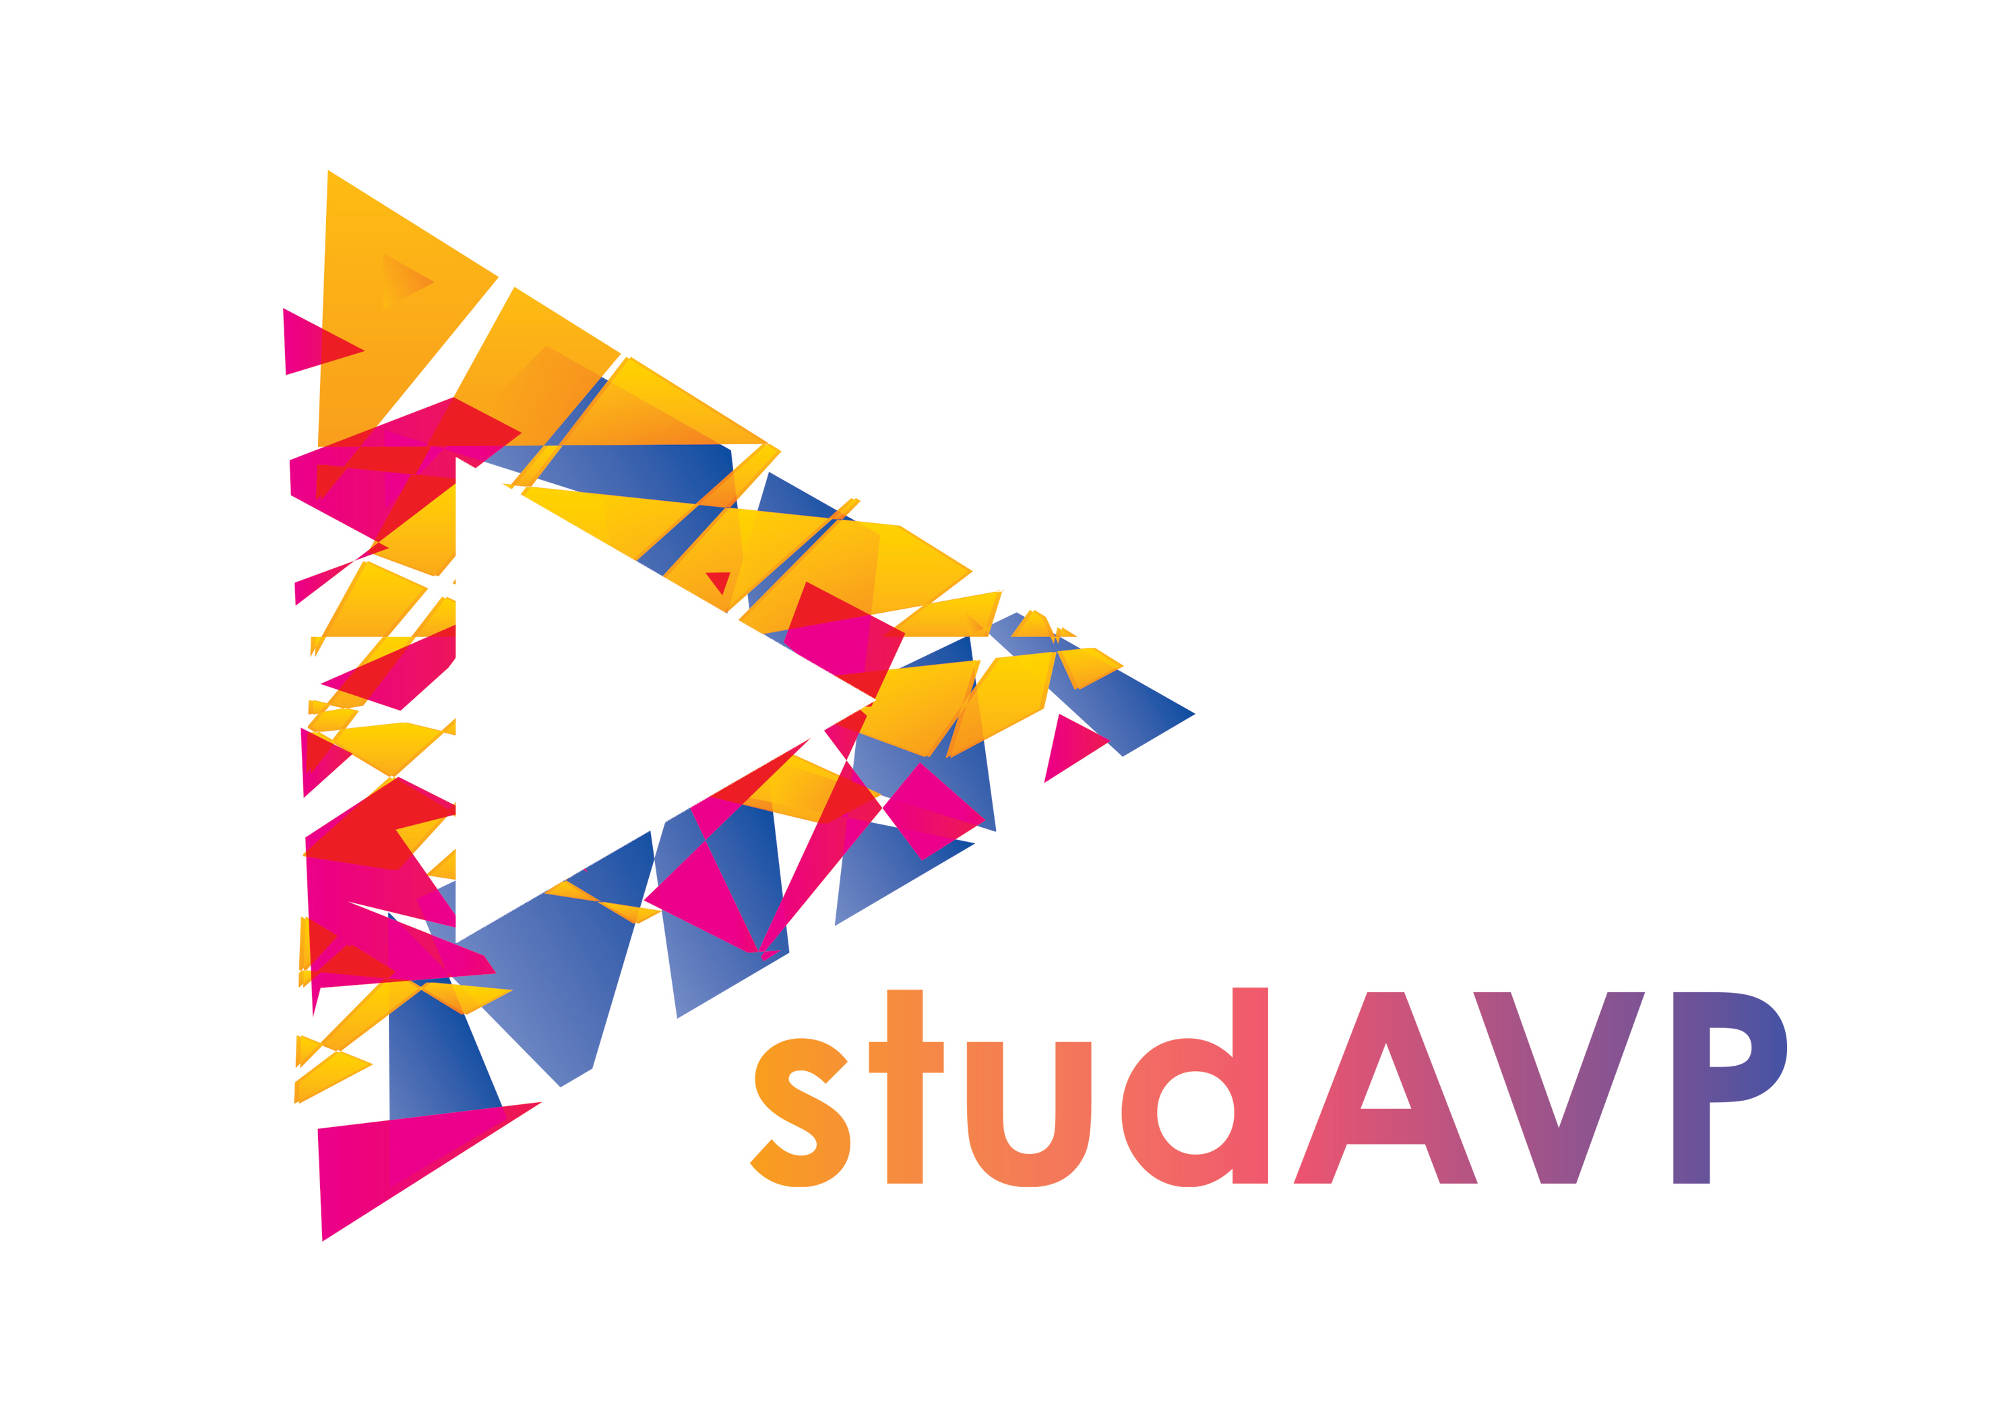 public/images/projects/10StudAVP-Logo.jpg